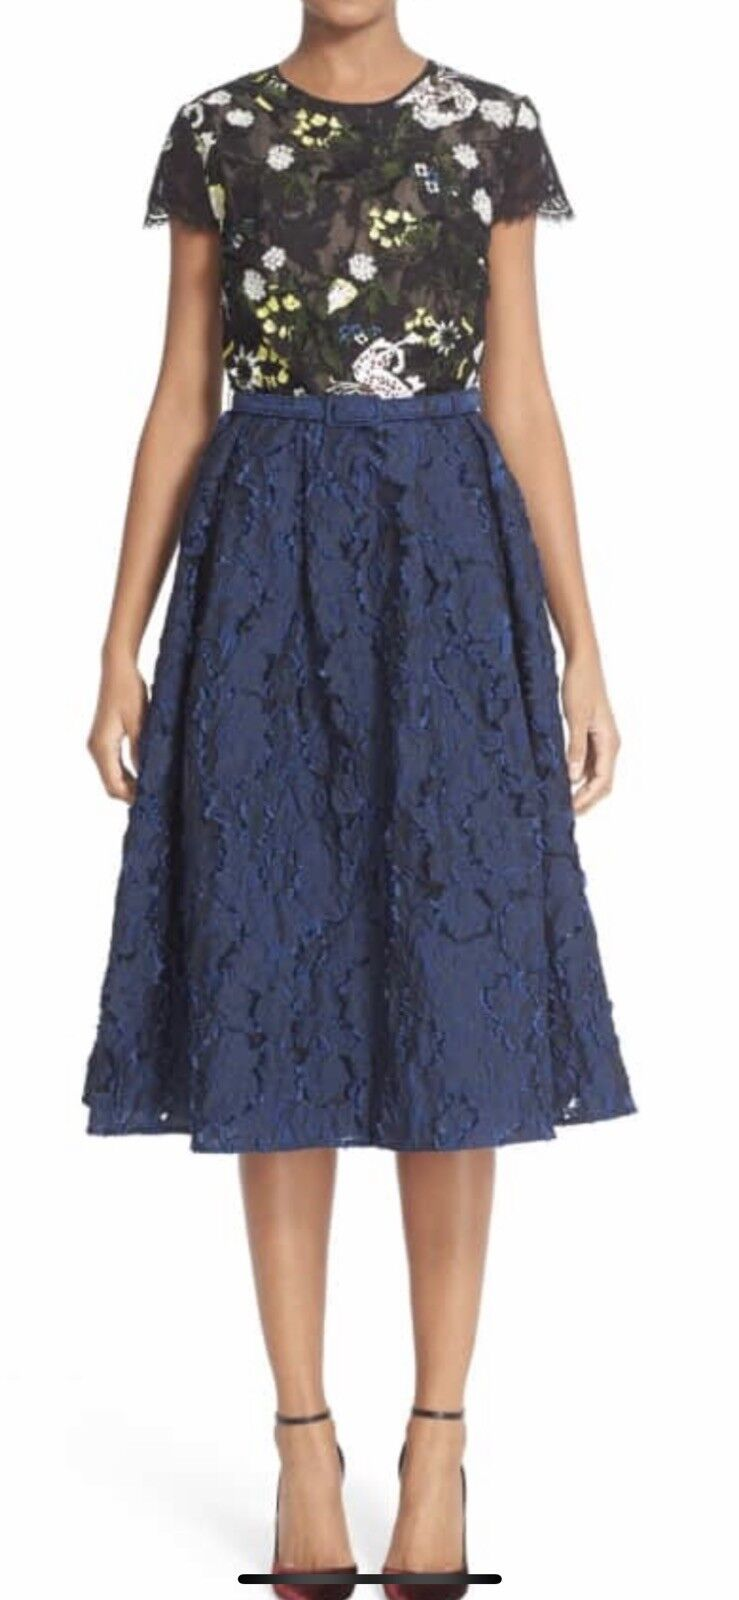 502cfb9f NWT Erdem 'Shirley' Floral Embroidered Lace Jacquard Dress US 12 IT 48